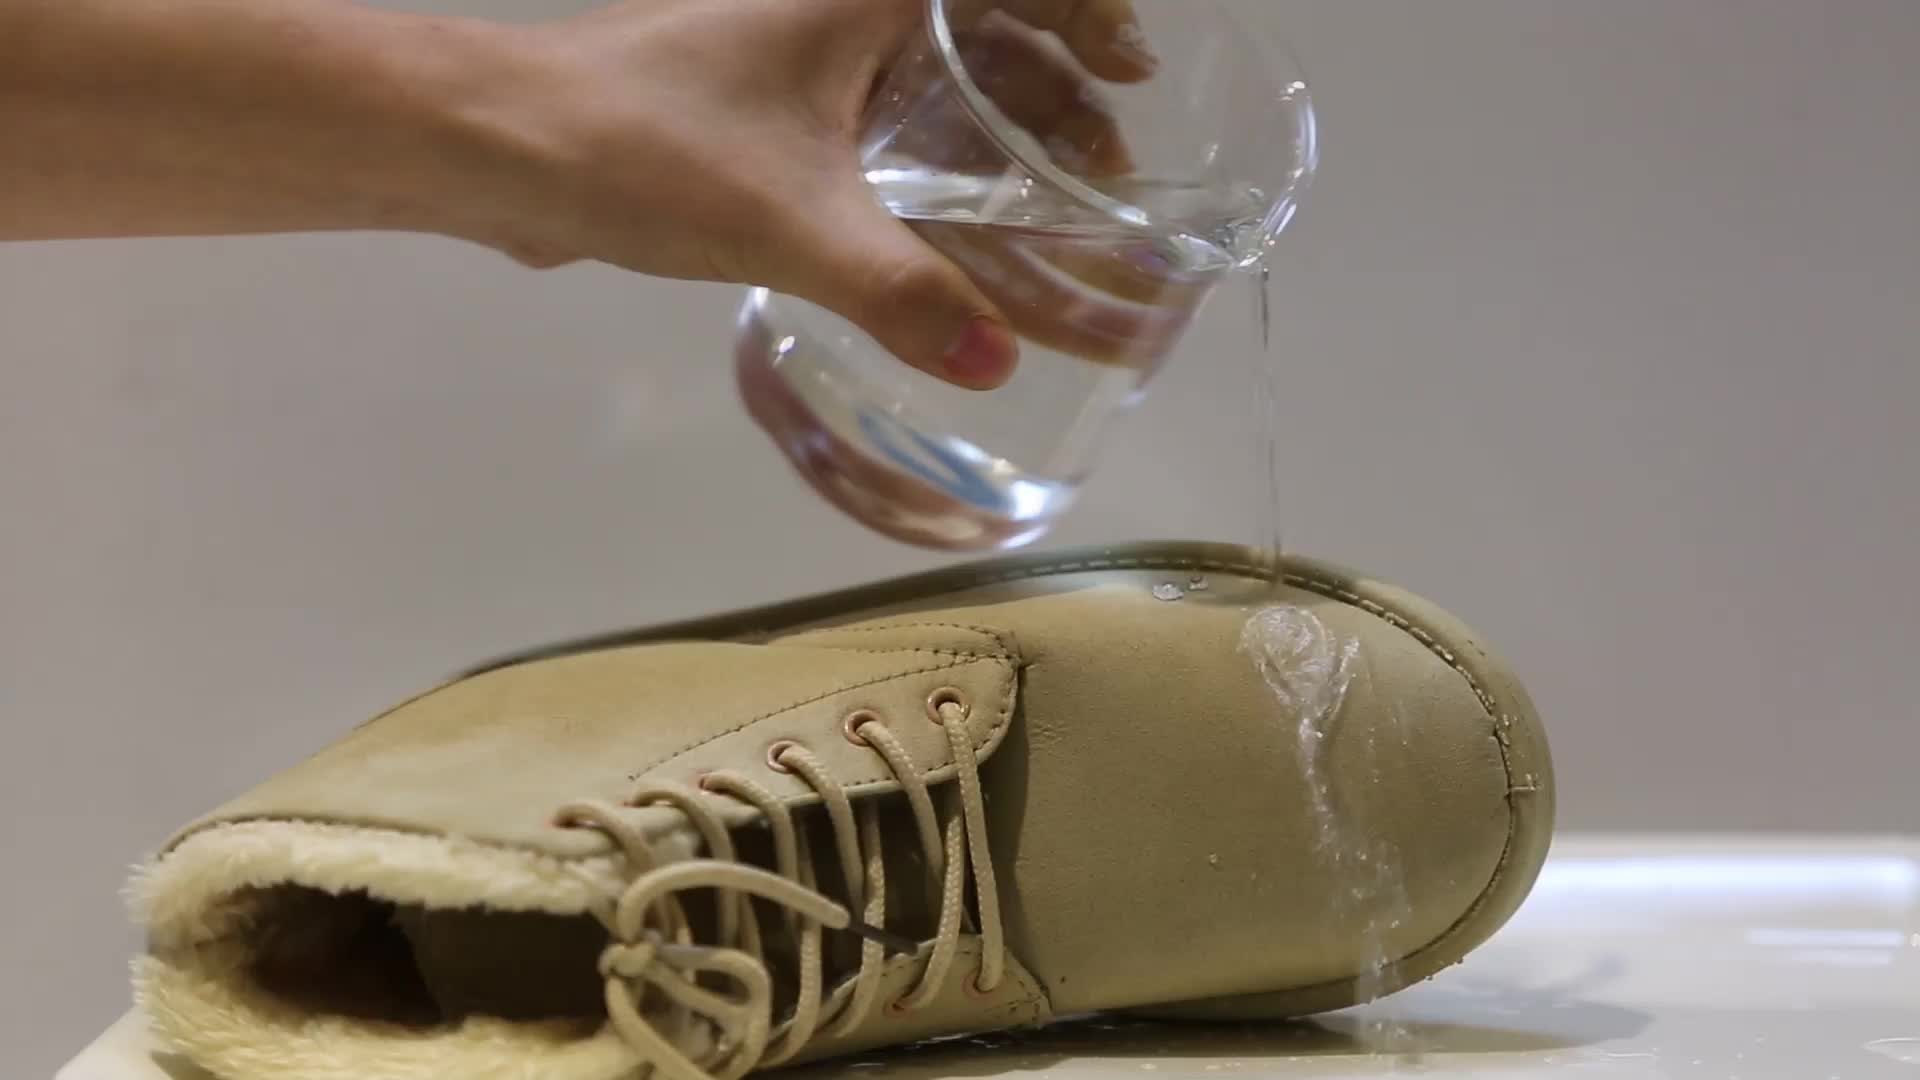 Eco-friendly custom leather cleaner leather sneaker cleaner leather shoe cleaner